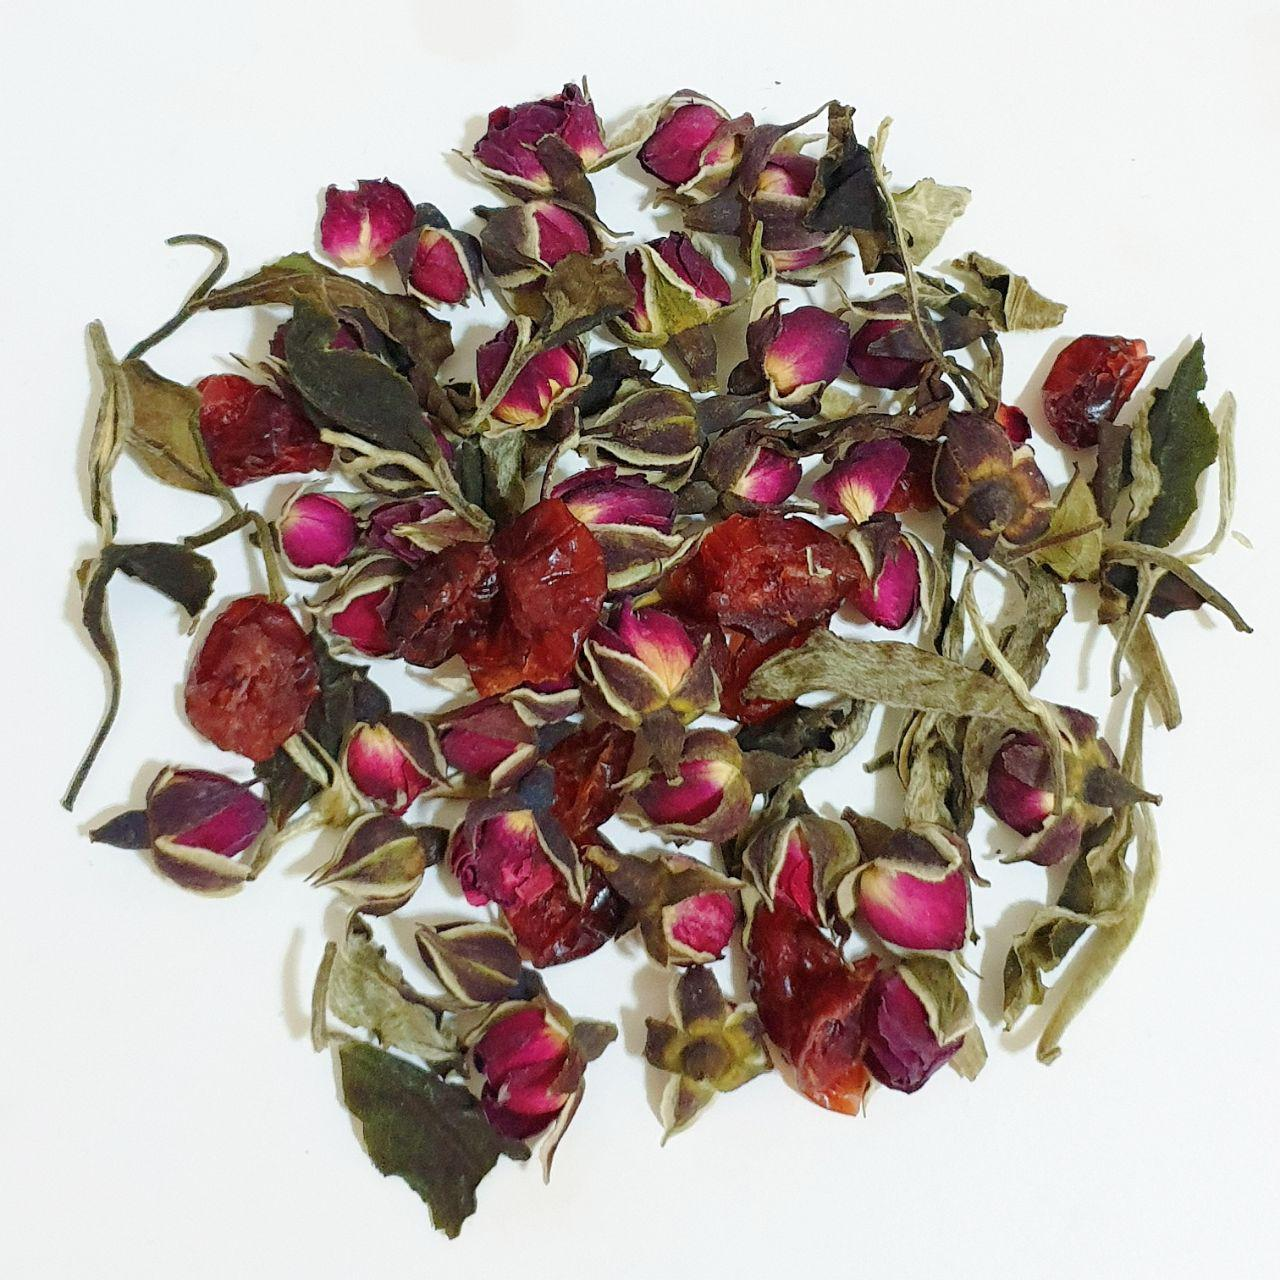 WHITE TEA COMBINES WELL WITH OTHER ANTIOXIDANT-RICH PLANTS - You can mix white tea with your favorite herb and flower to boost its flavour and antioxidant contents.